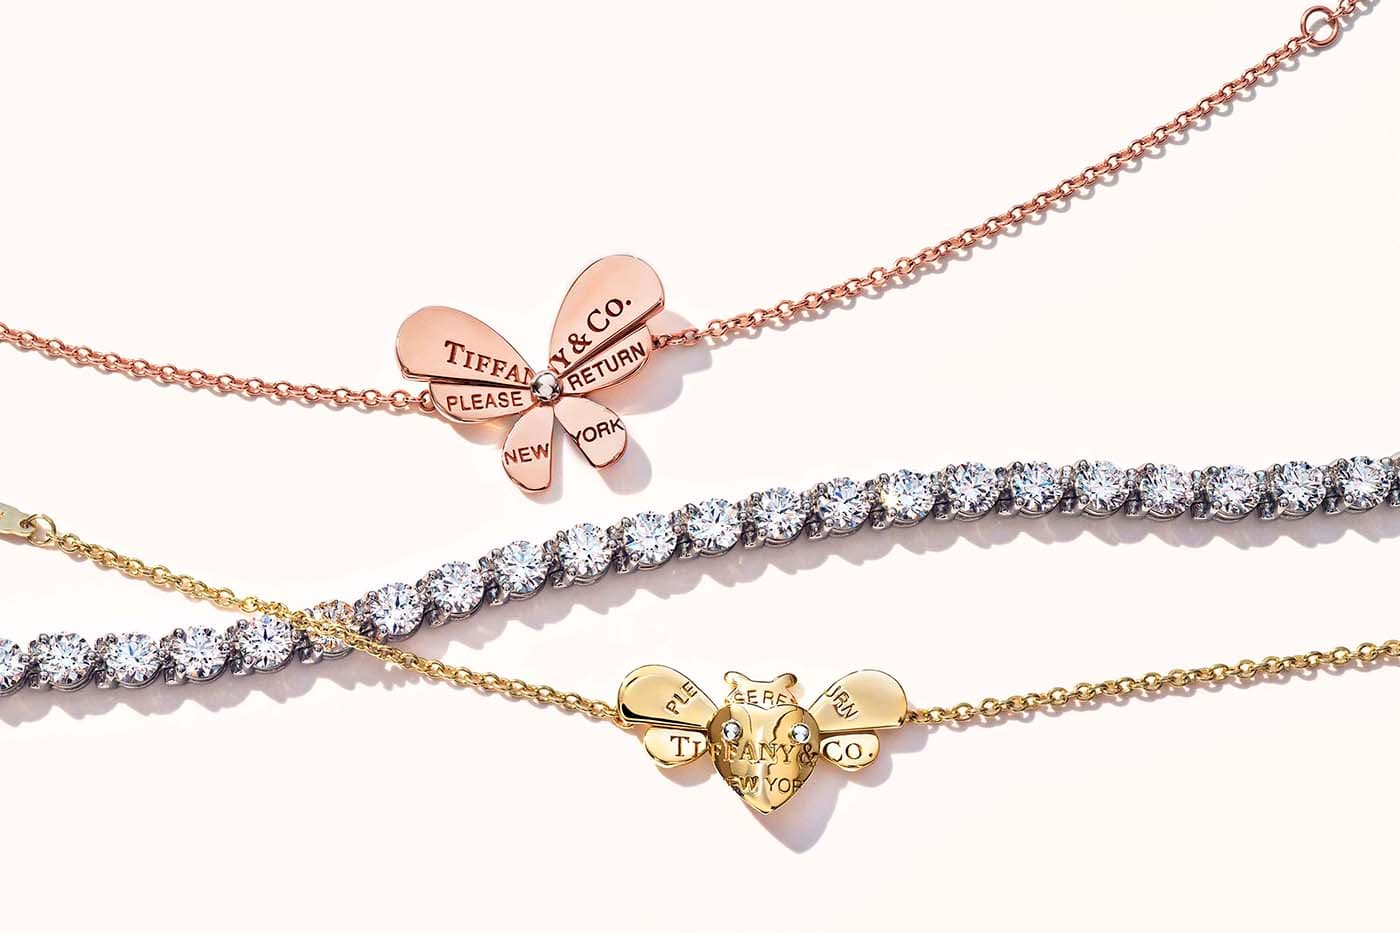 Tiffany&Co. 'Return to Tiffany Love Bugs' collection bracelets with diamond bracelet in yellow, rose and white gold and silver